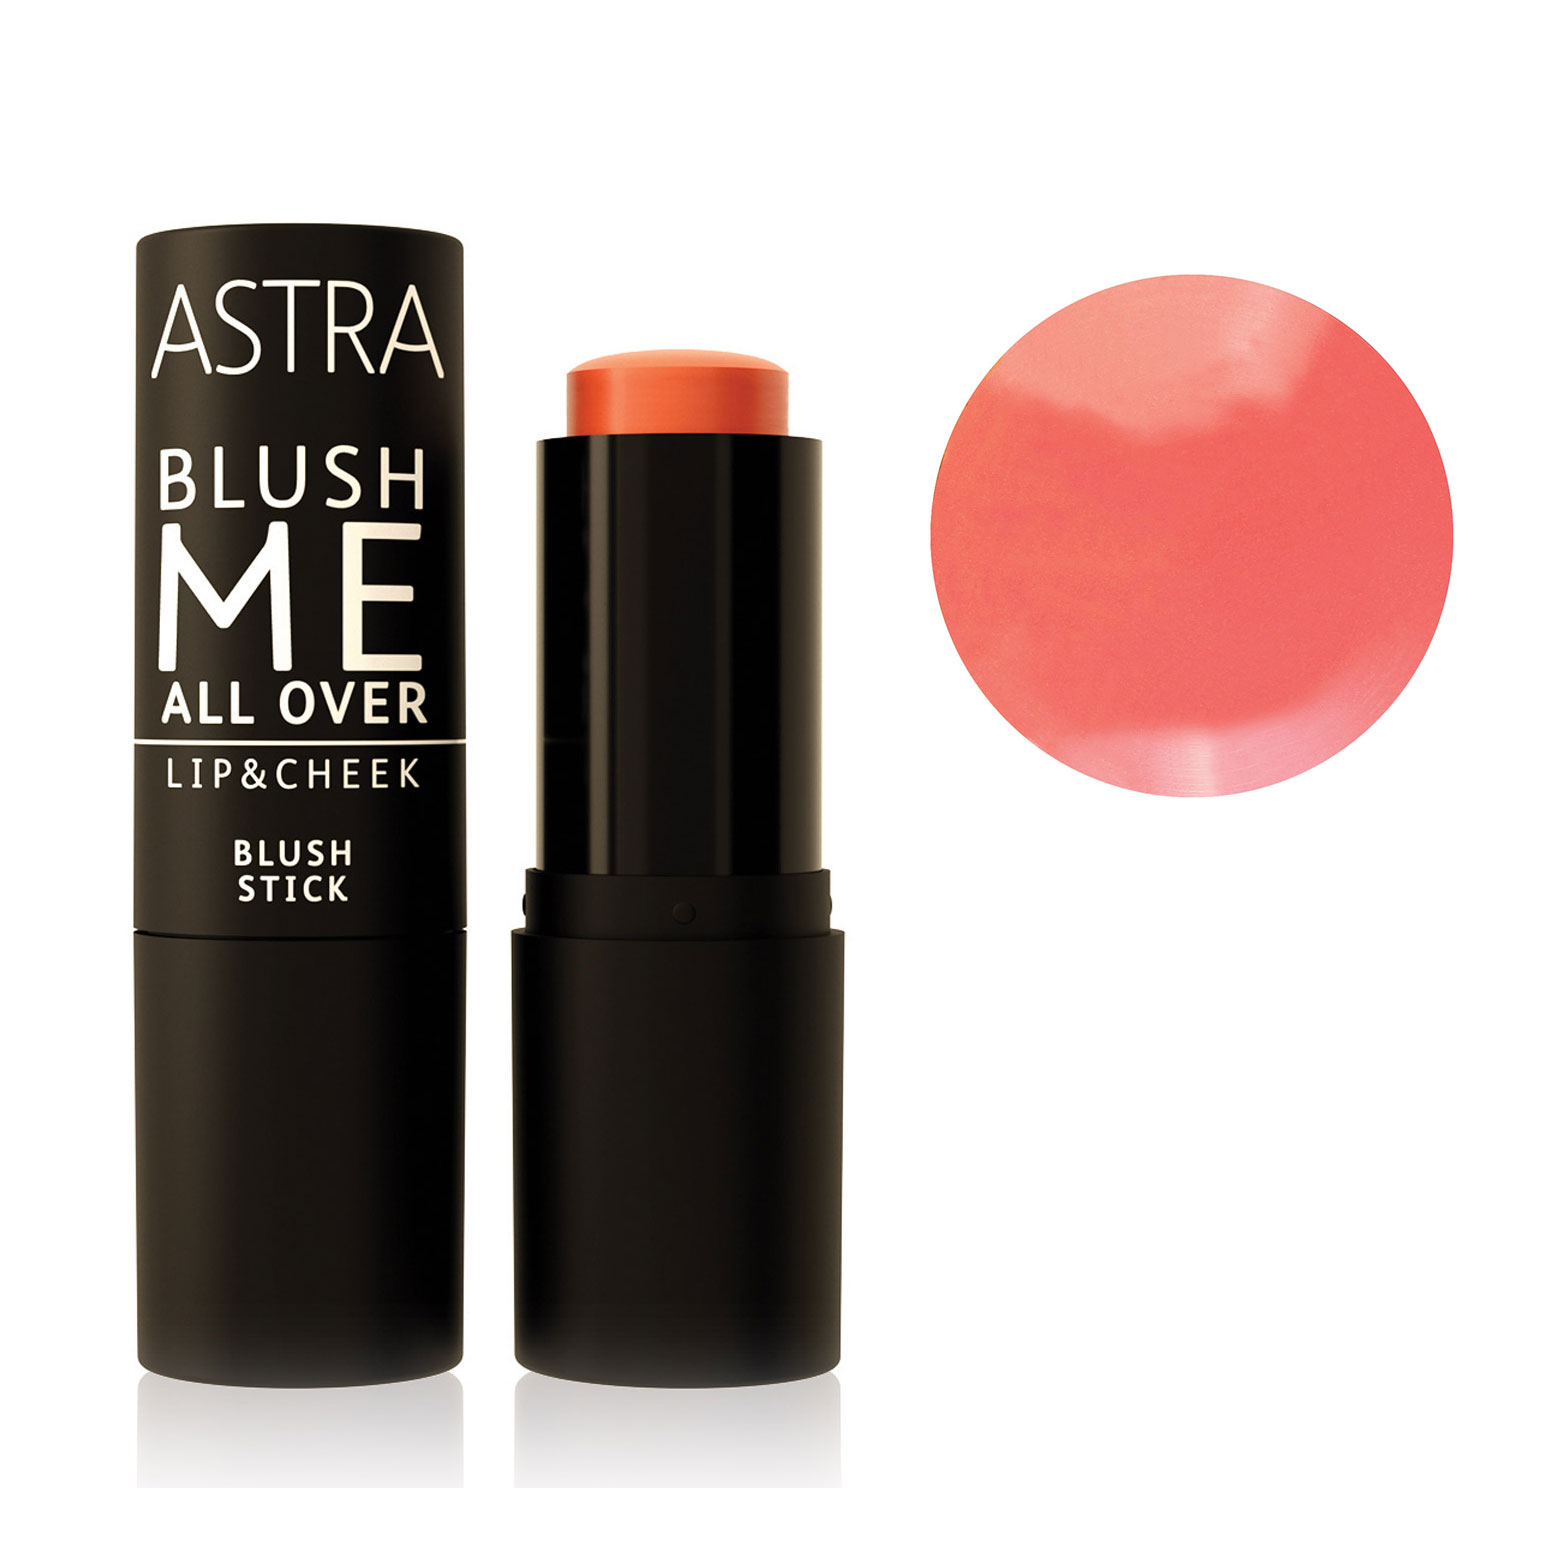 Astra Blush Me All Over n. 06 rosey peach